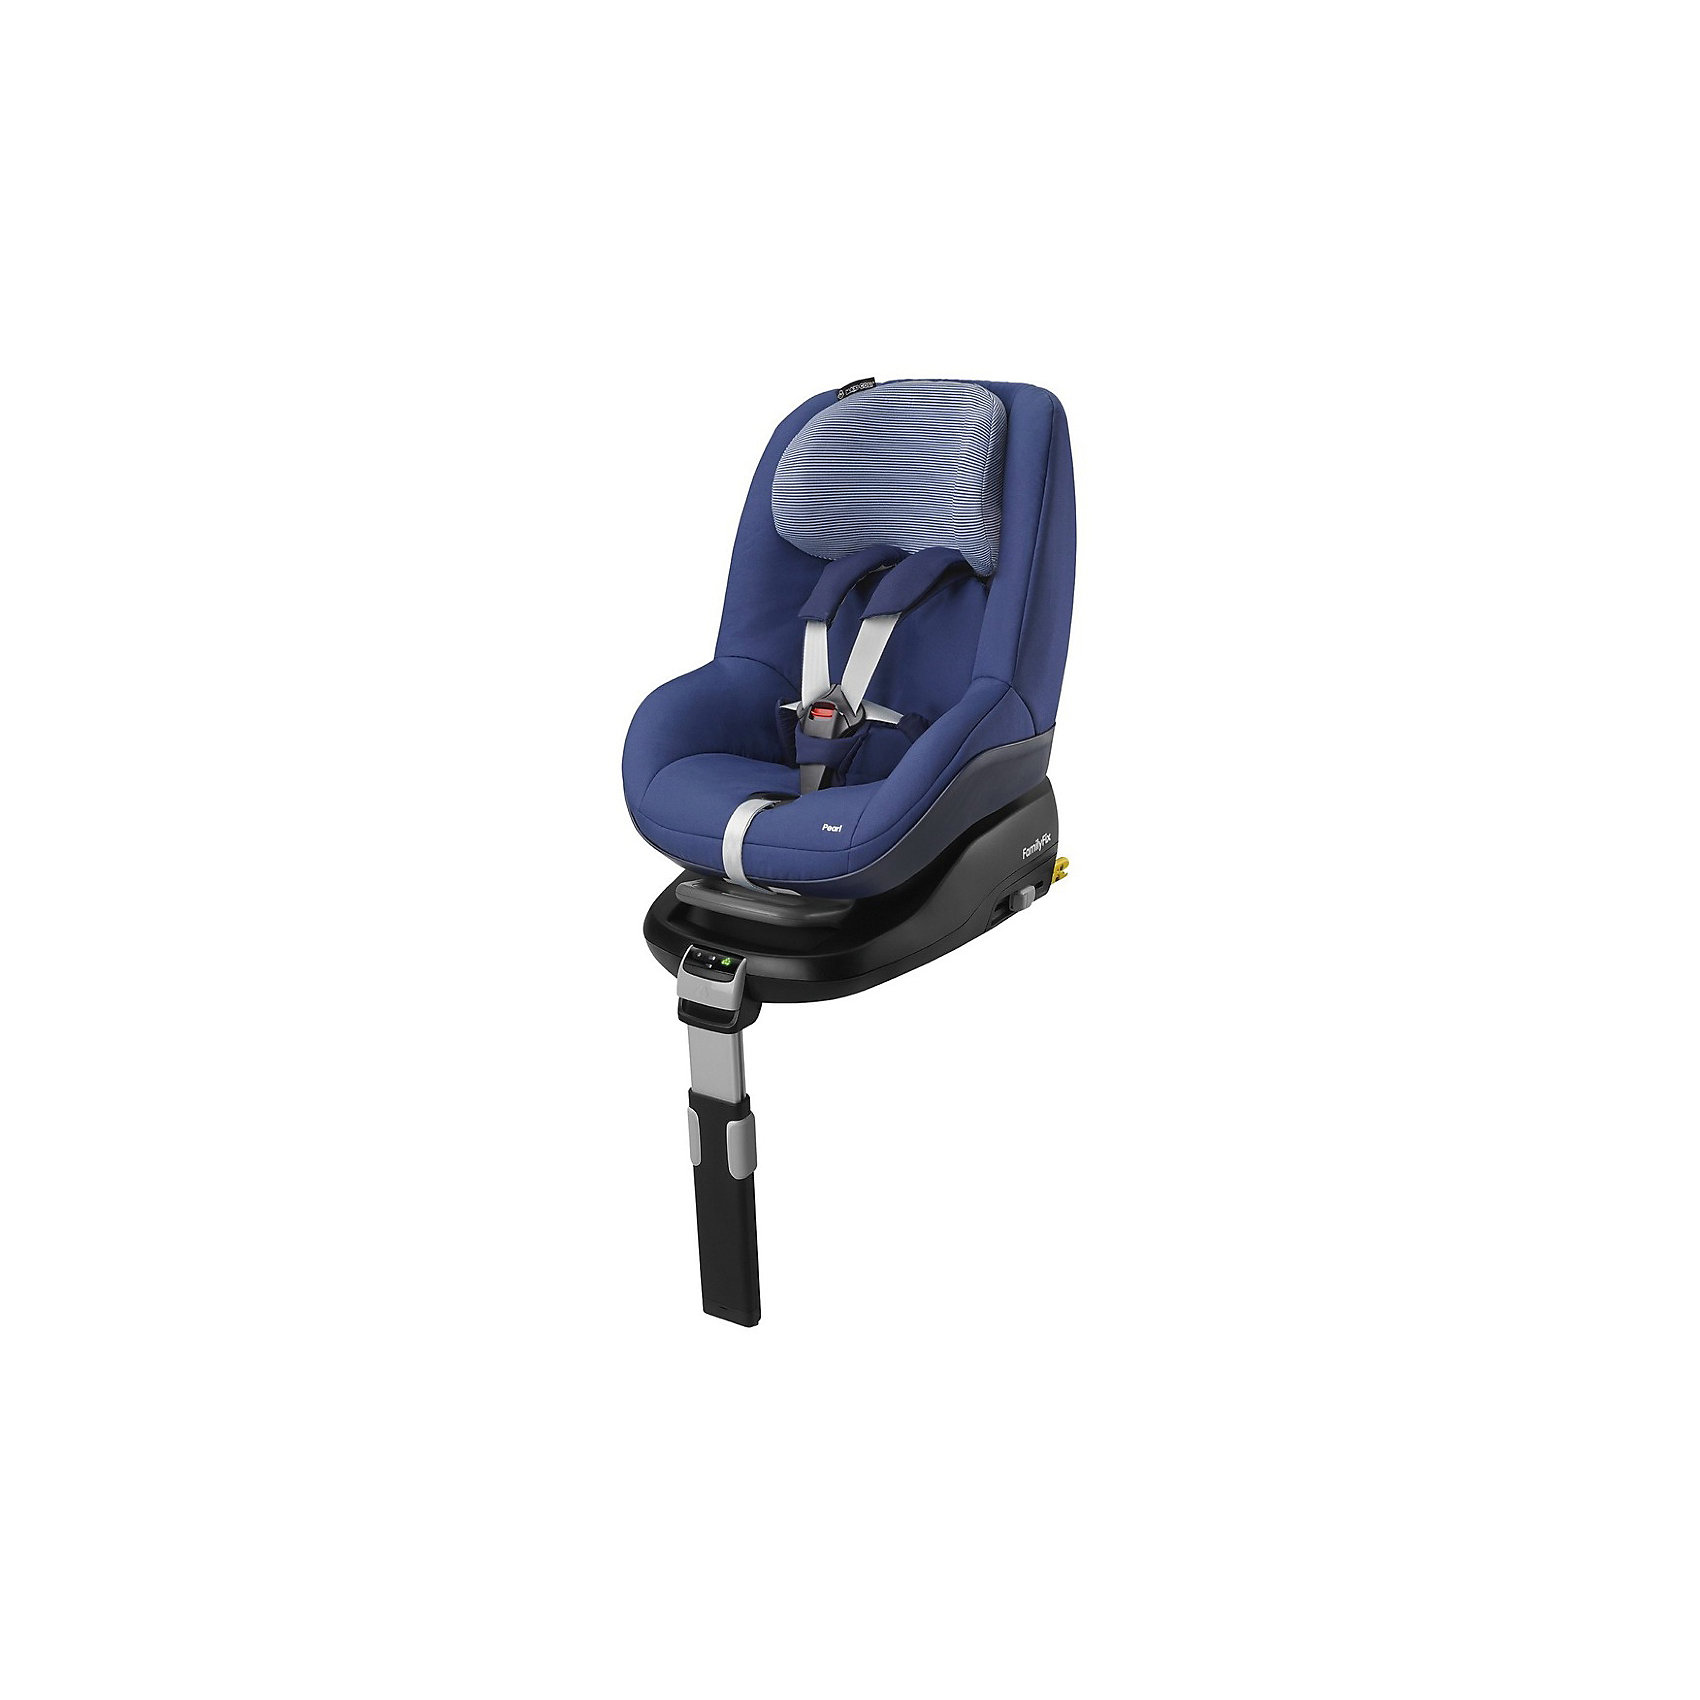 Maxi Cosi Автокресло Pearl 9-18 кг., Maxi-Cosi, River Blue